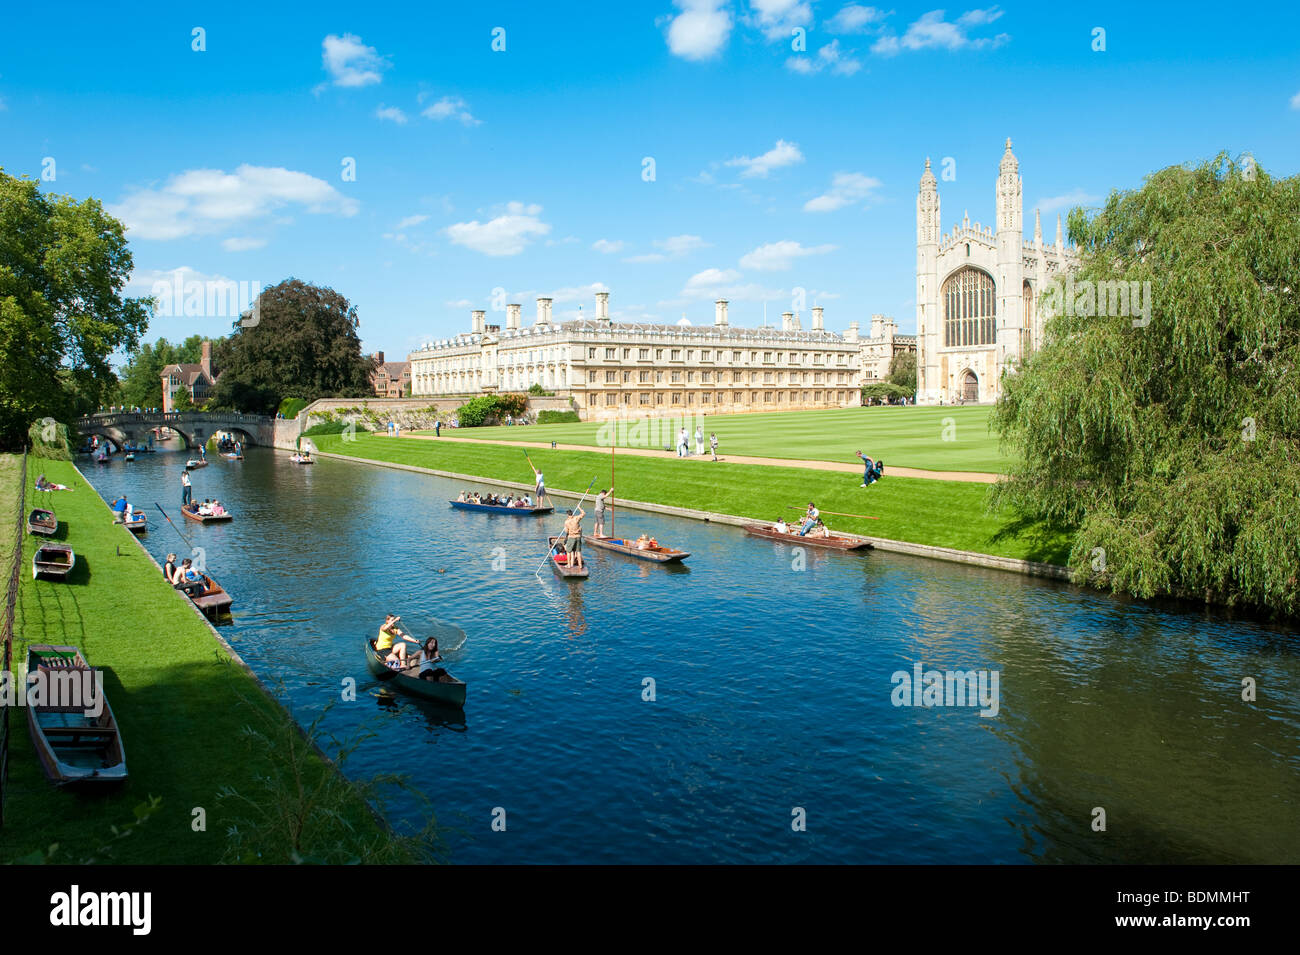 Punting on the River Cam, Cambridge, UK - Stock Image